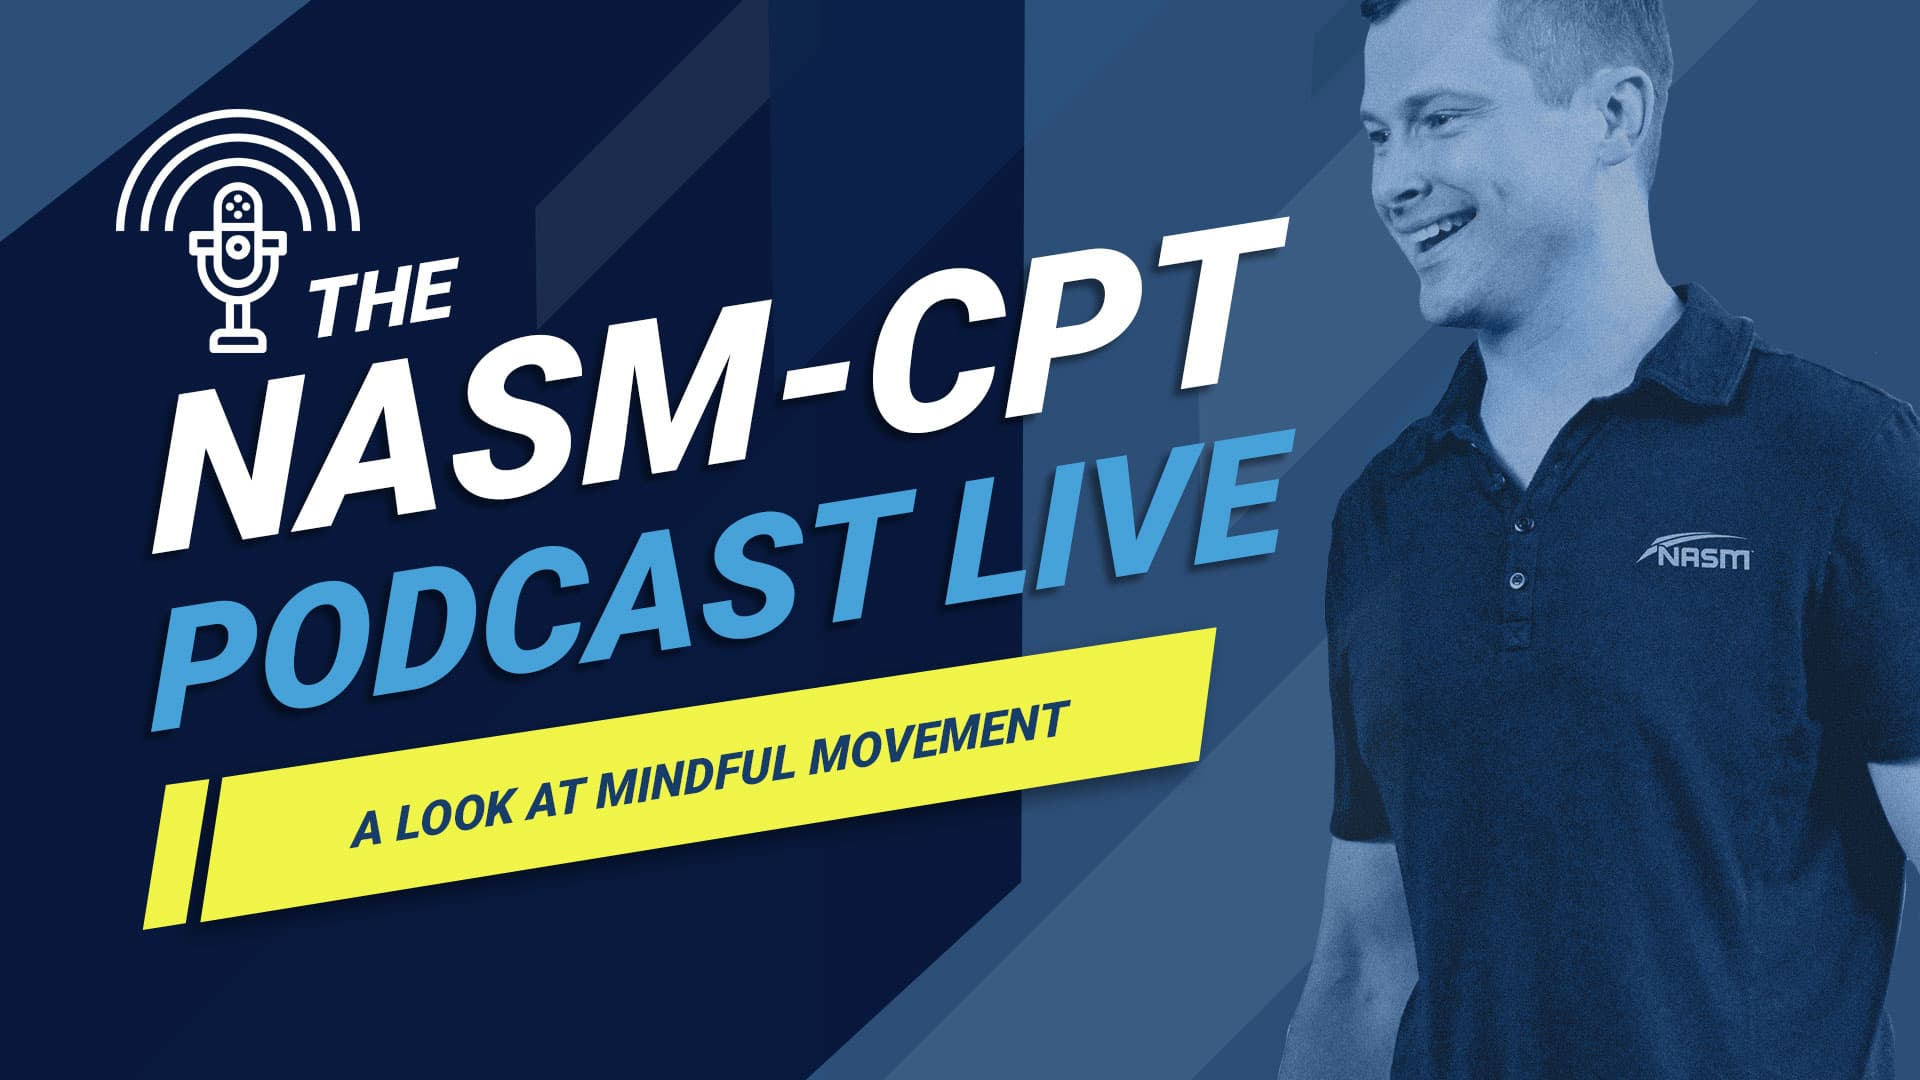 nasm podcast mindful movement episode banner